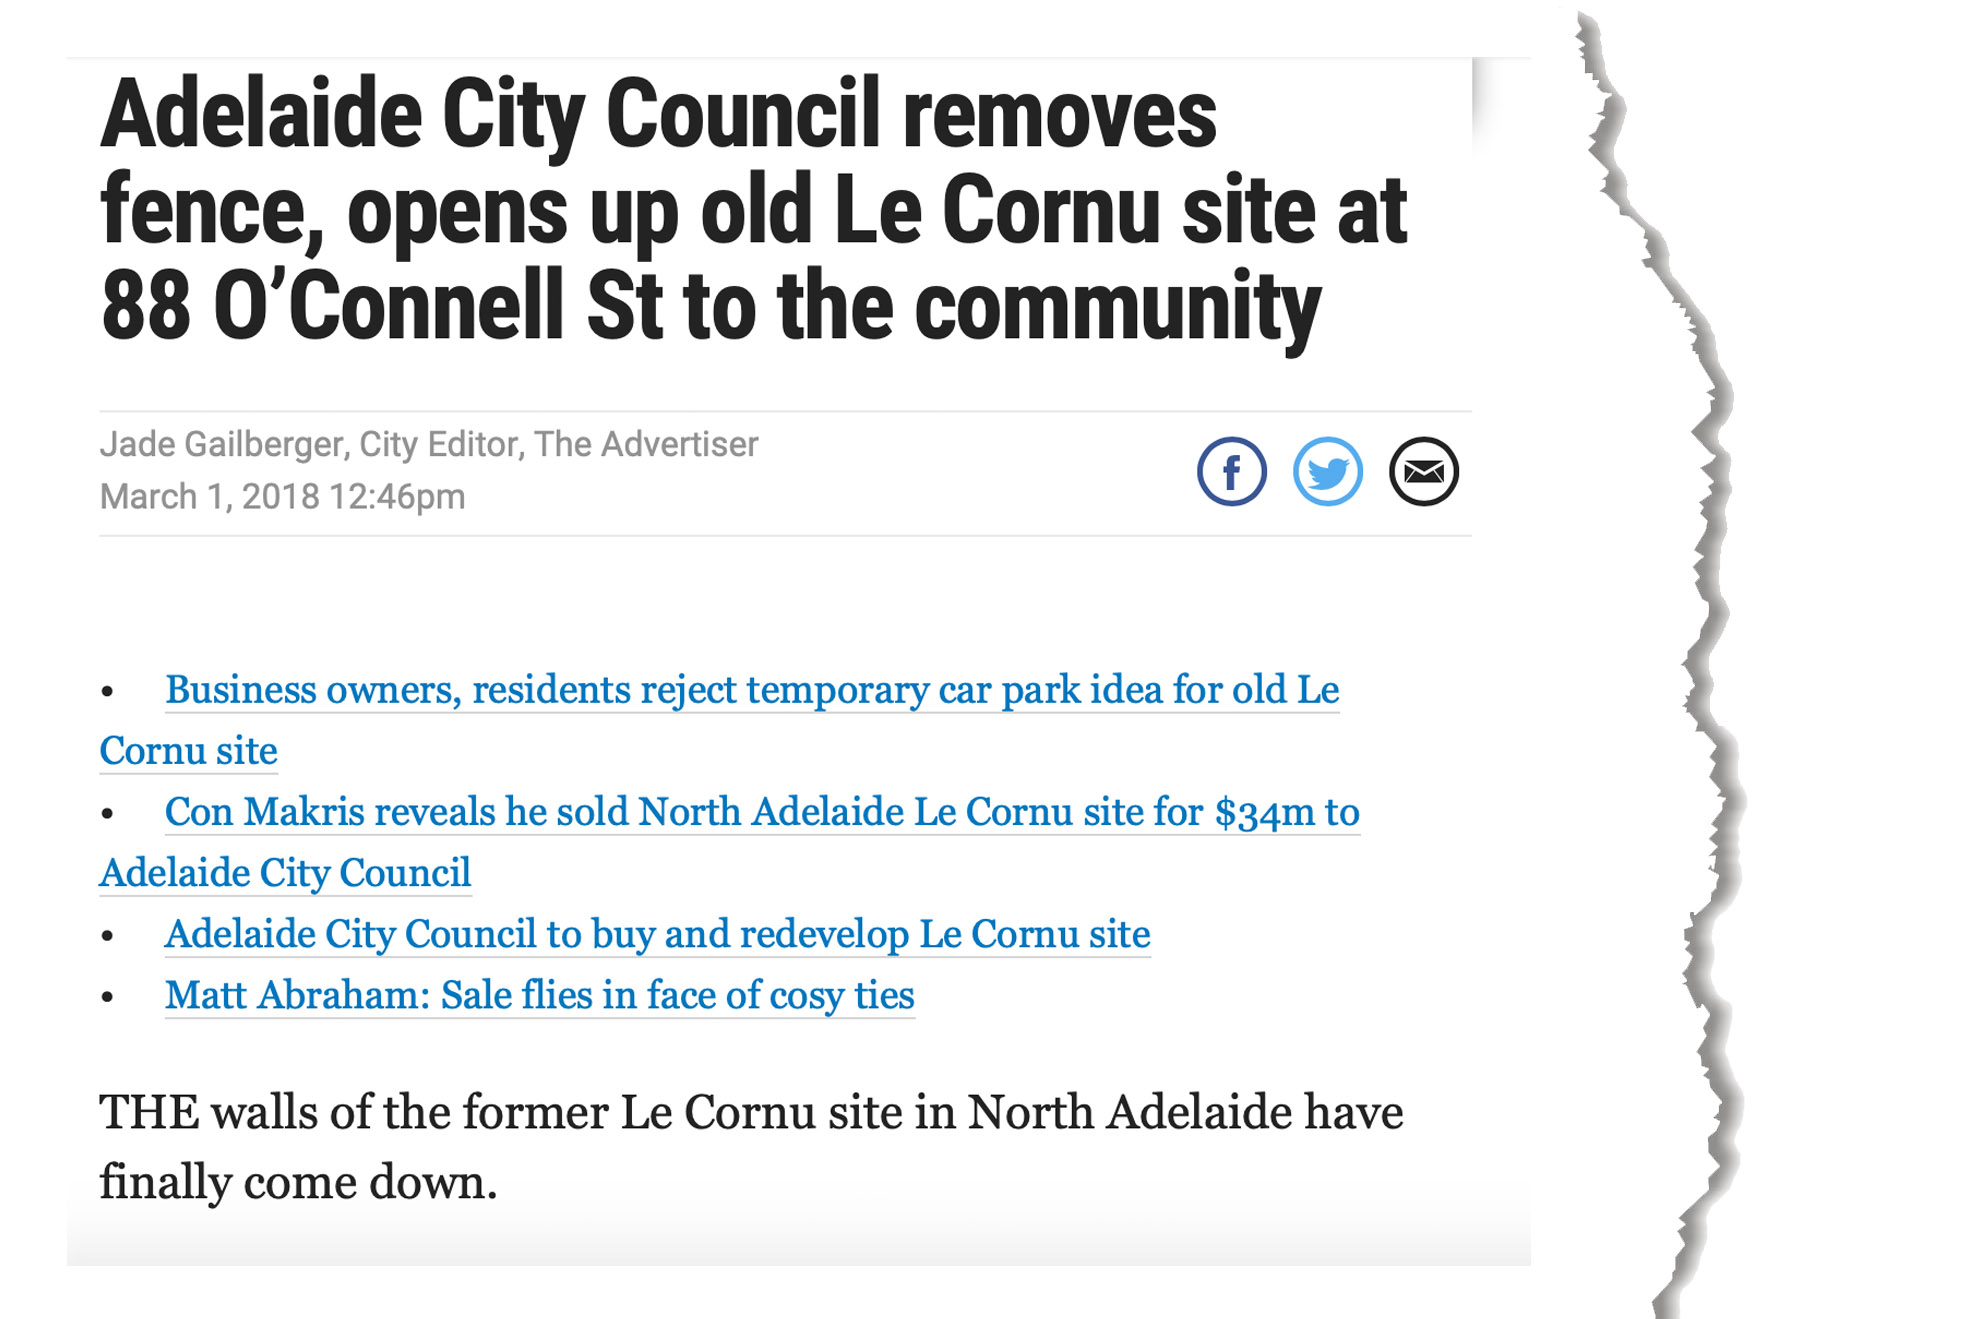 Adelaide City Council Lecornu Site 88 O'Connell Street The Advertiser 1st of March 2018